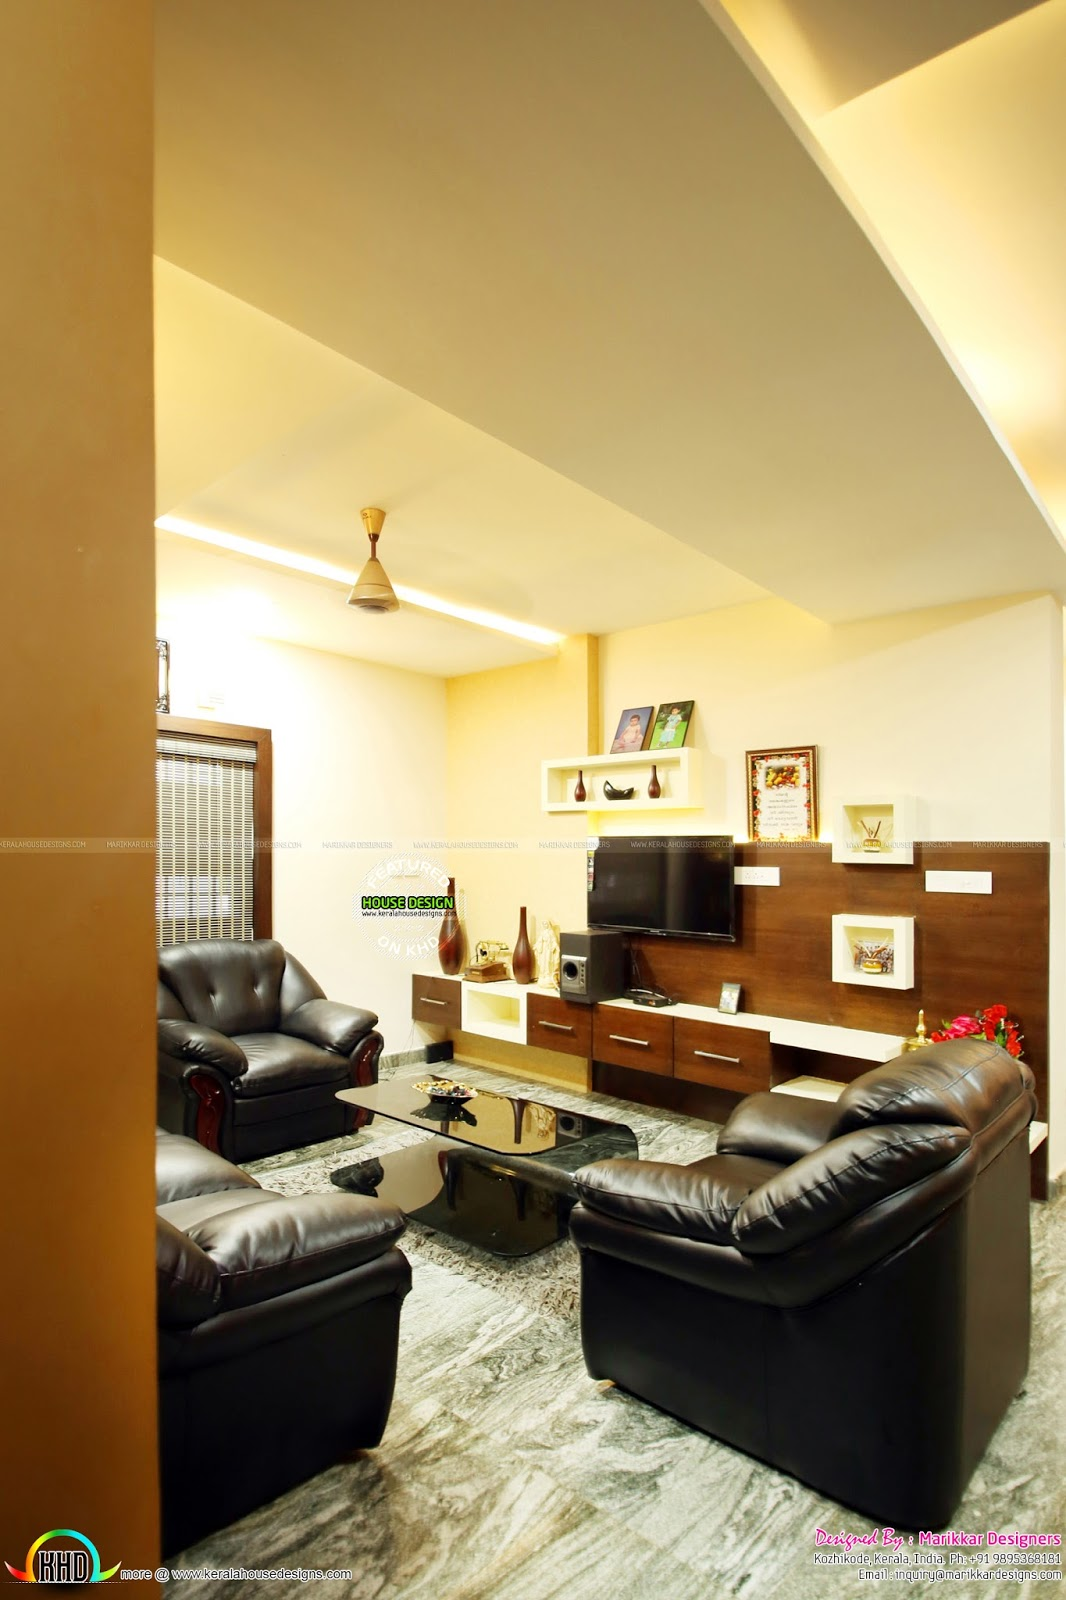 Kerala House Interior Design: Fully Furnished House In Kerala